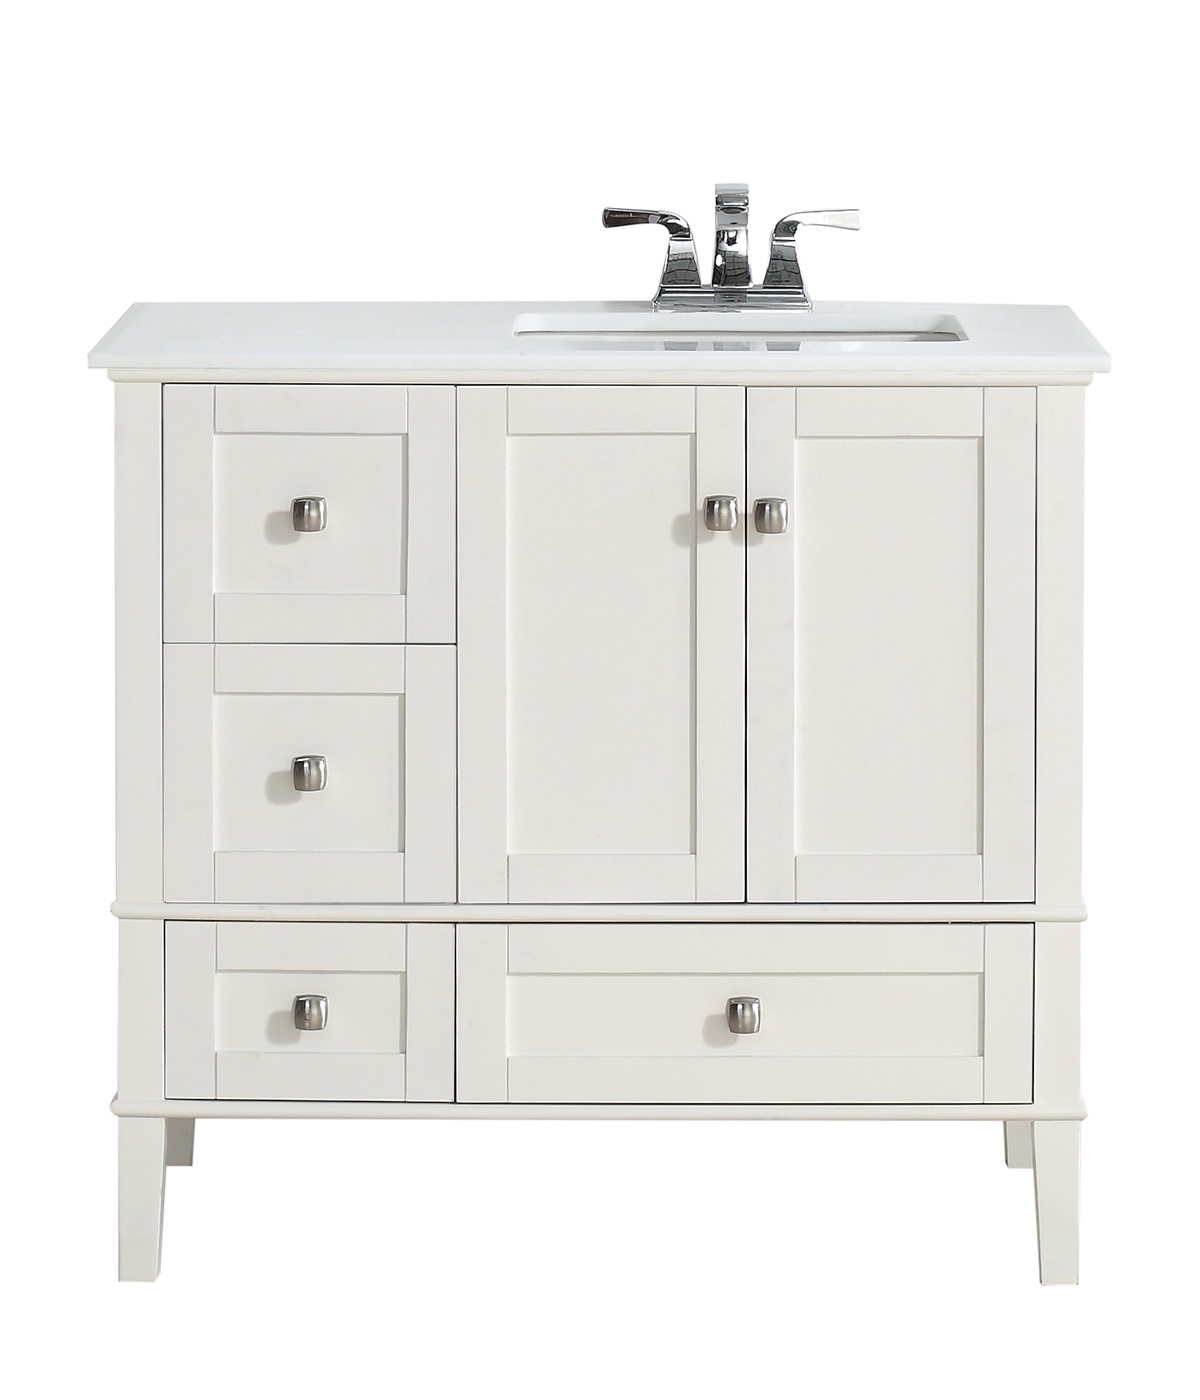 30 Inch Bathroom Vanity With Drawers On Right